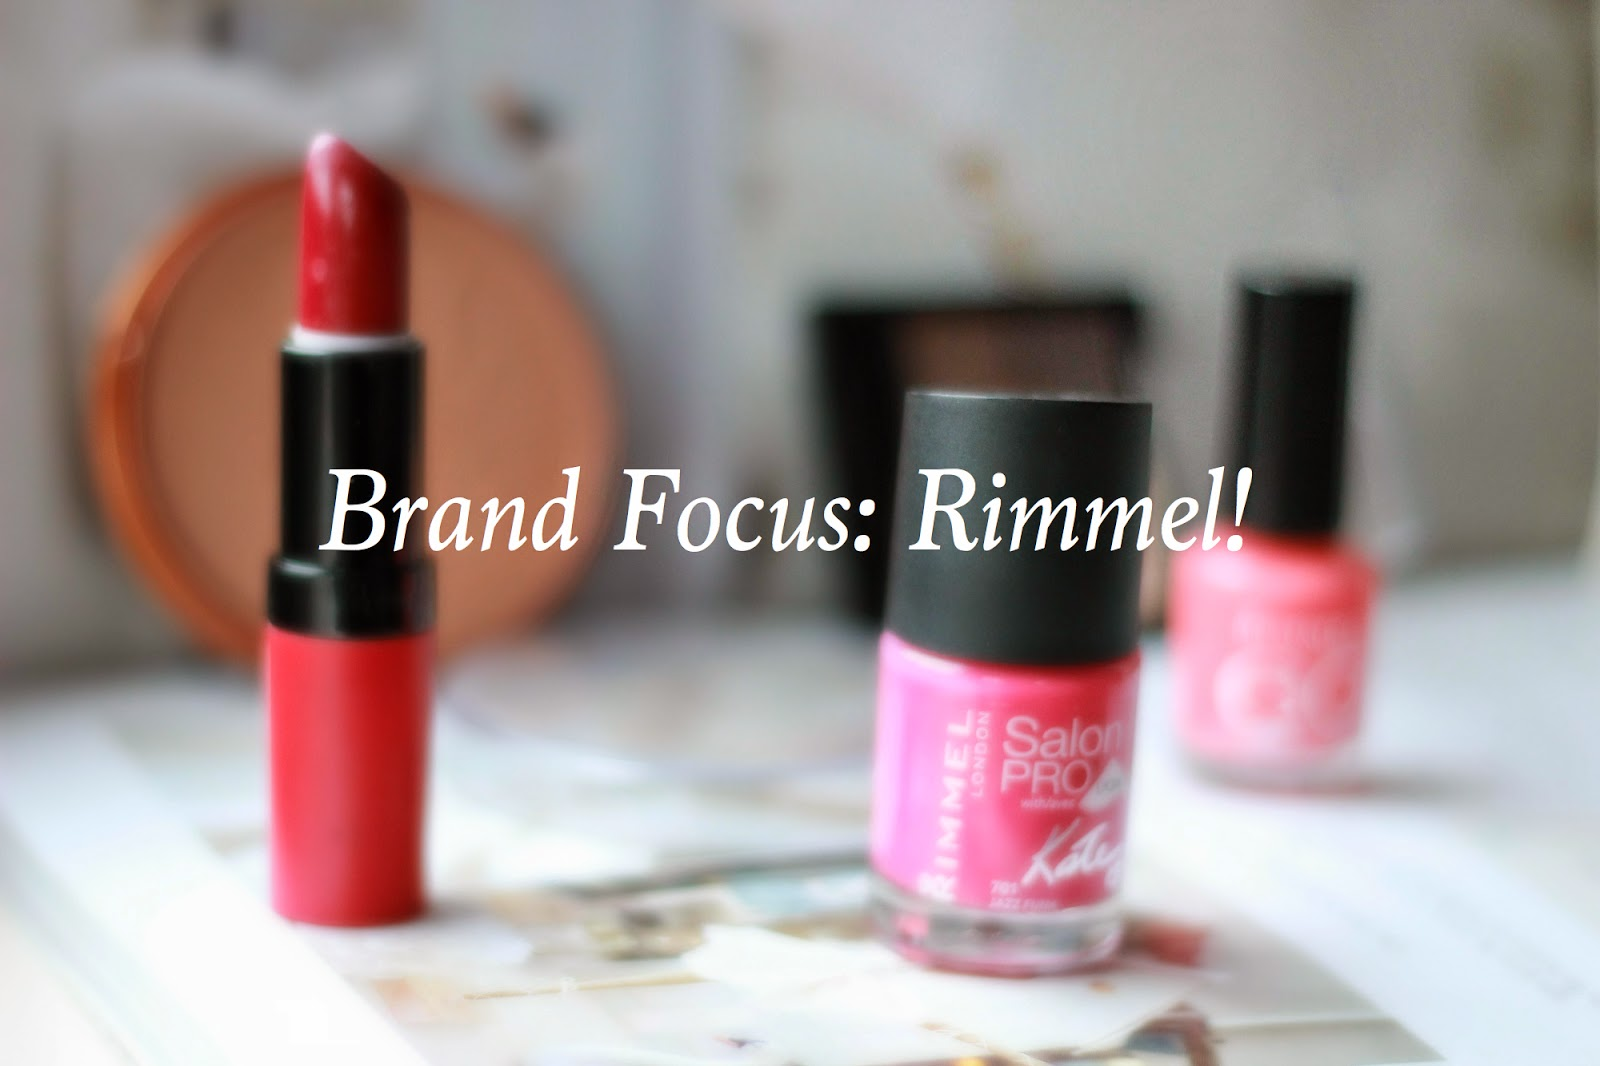 brand focus rimmel london, favoriete producten rimmel london